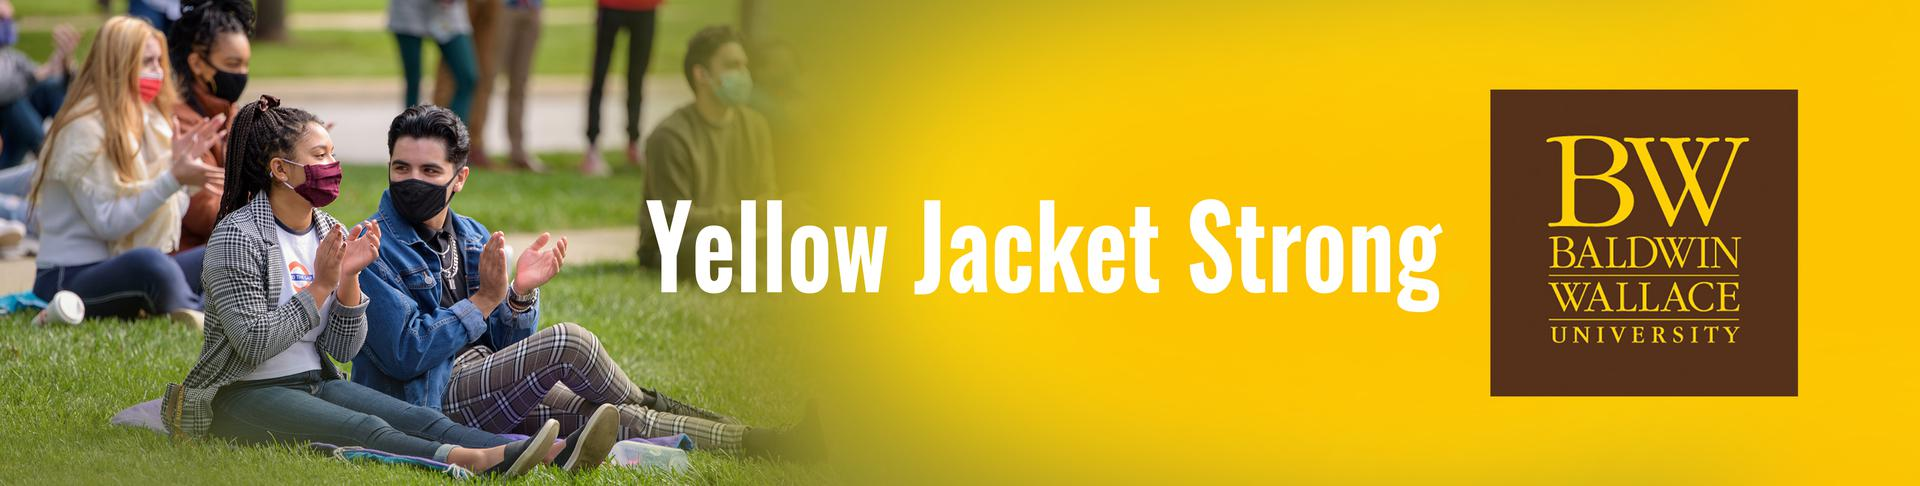 Yellow Jacket Strong